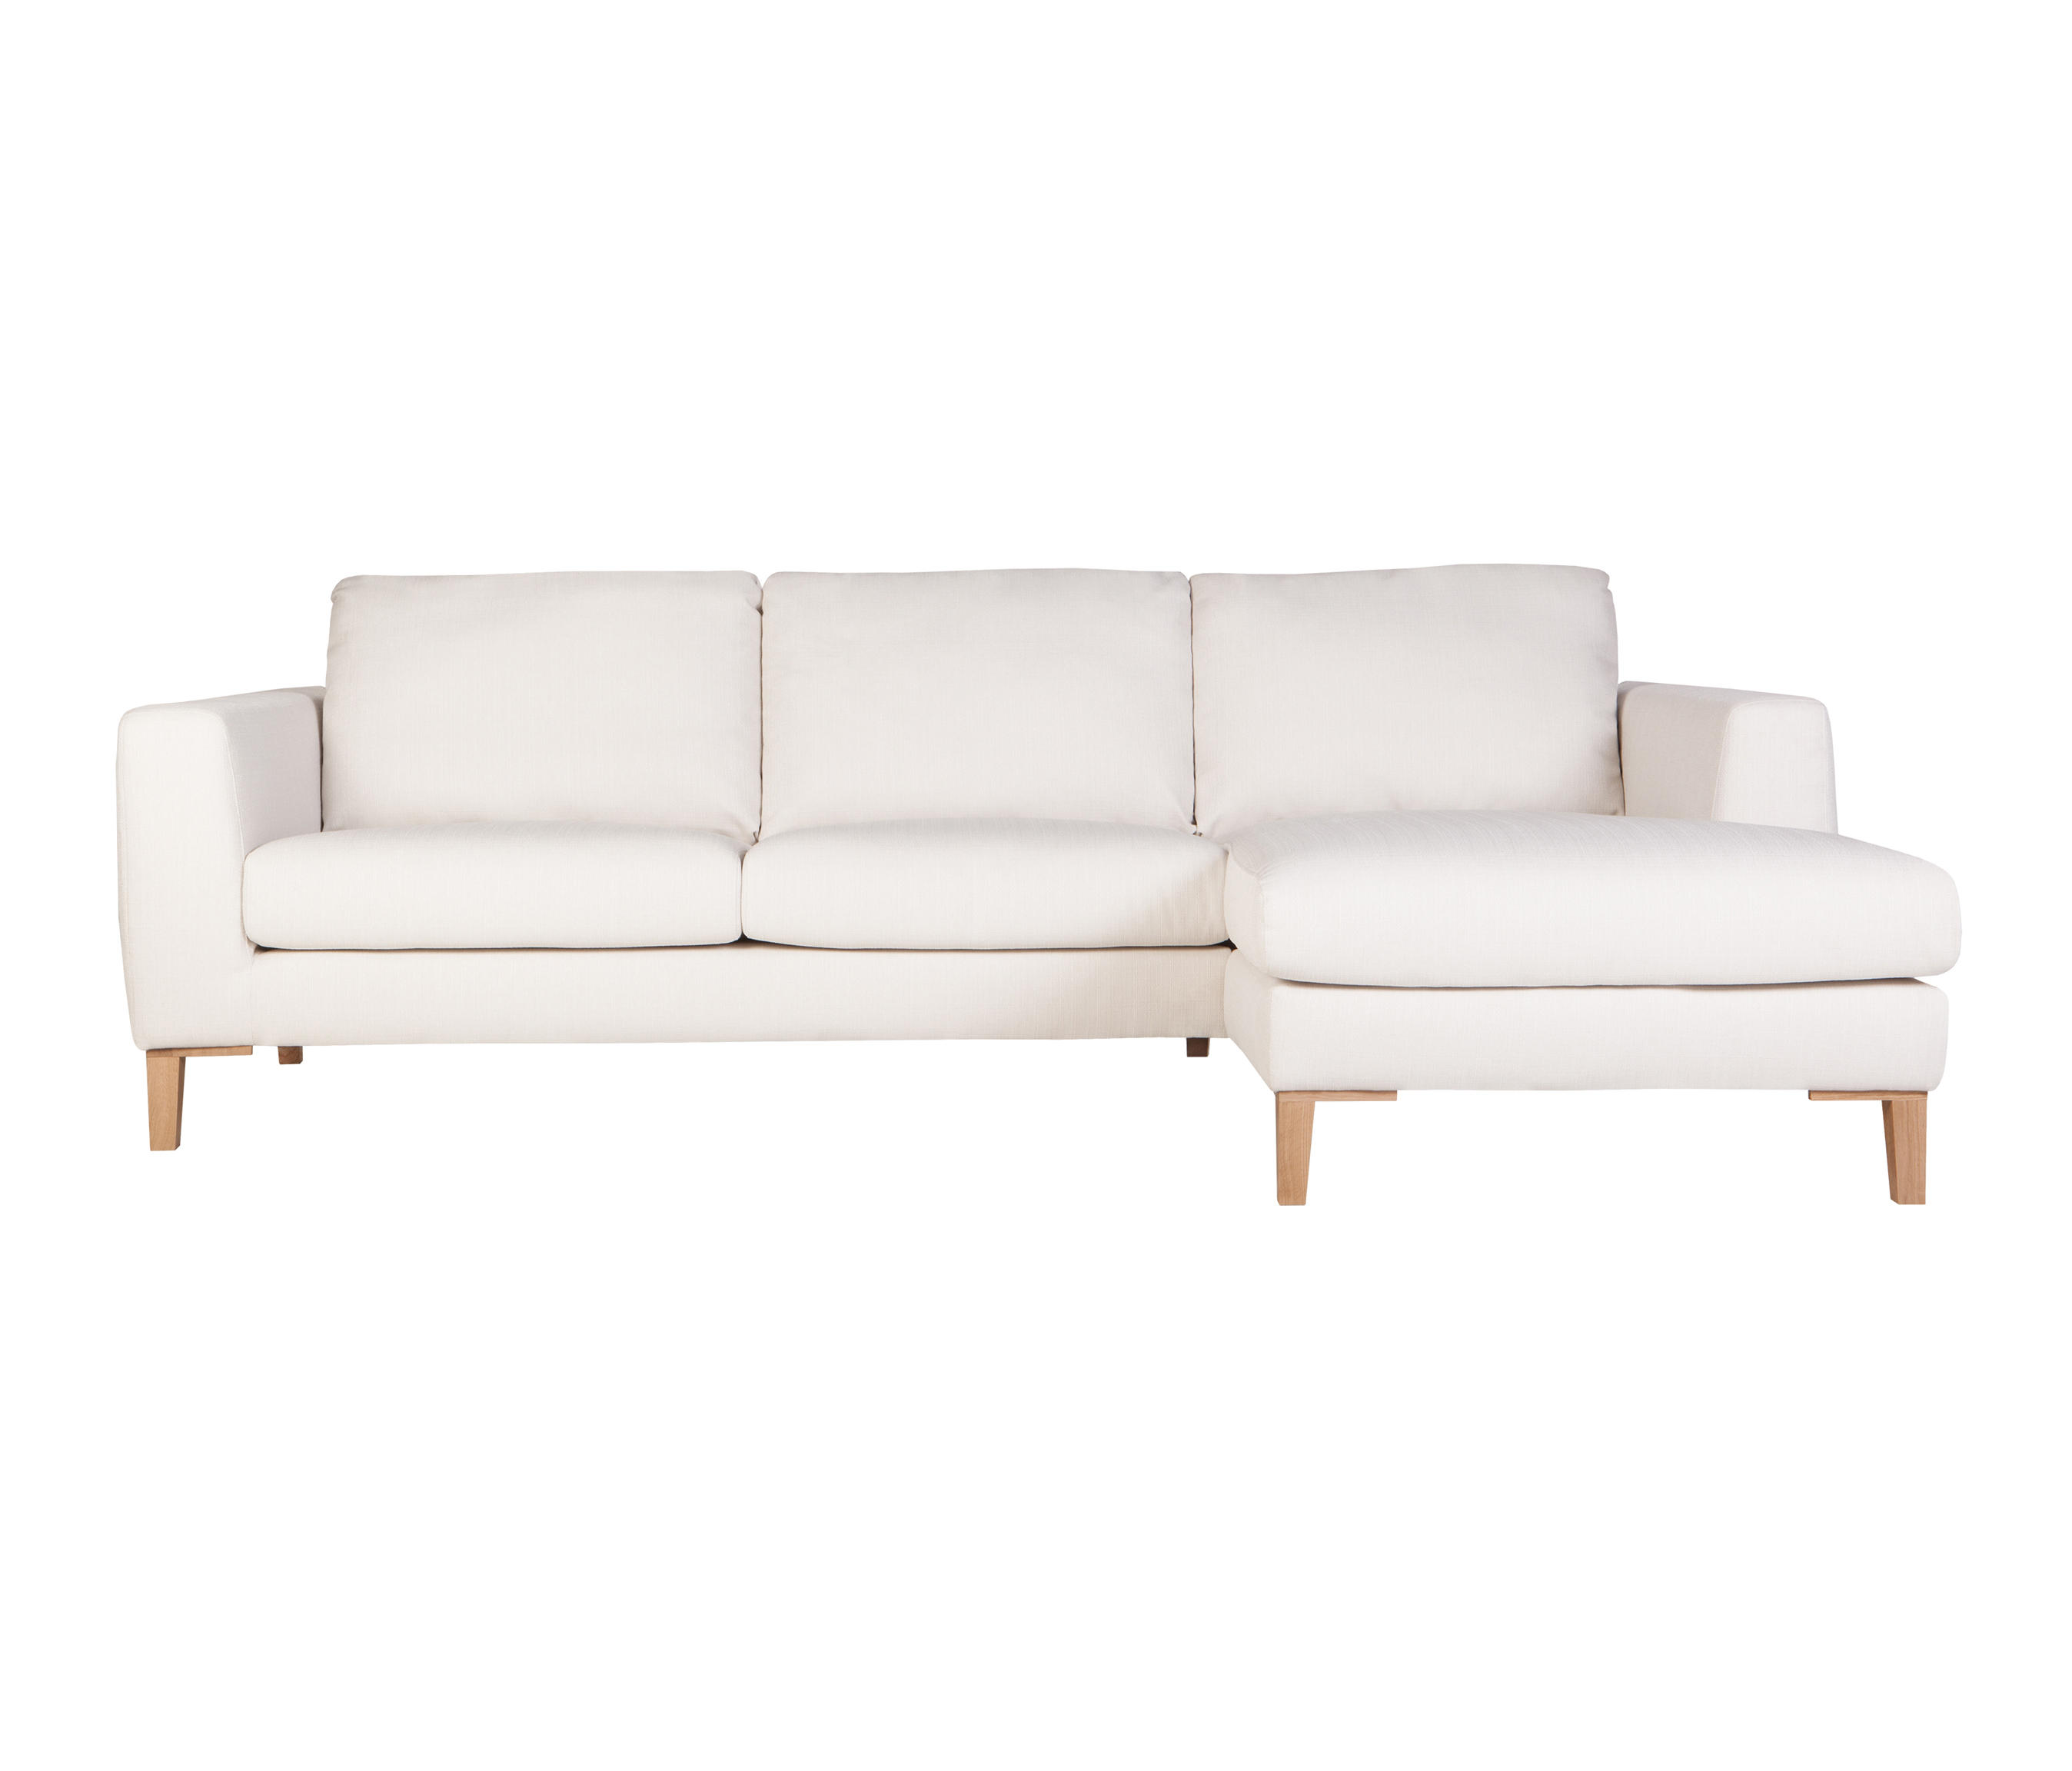 Malin By SITS   Sofas Malin By SITS   Sofas ...